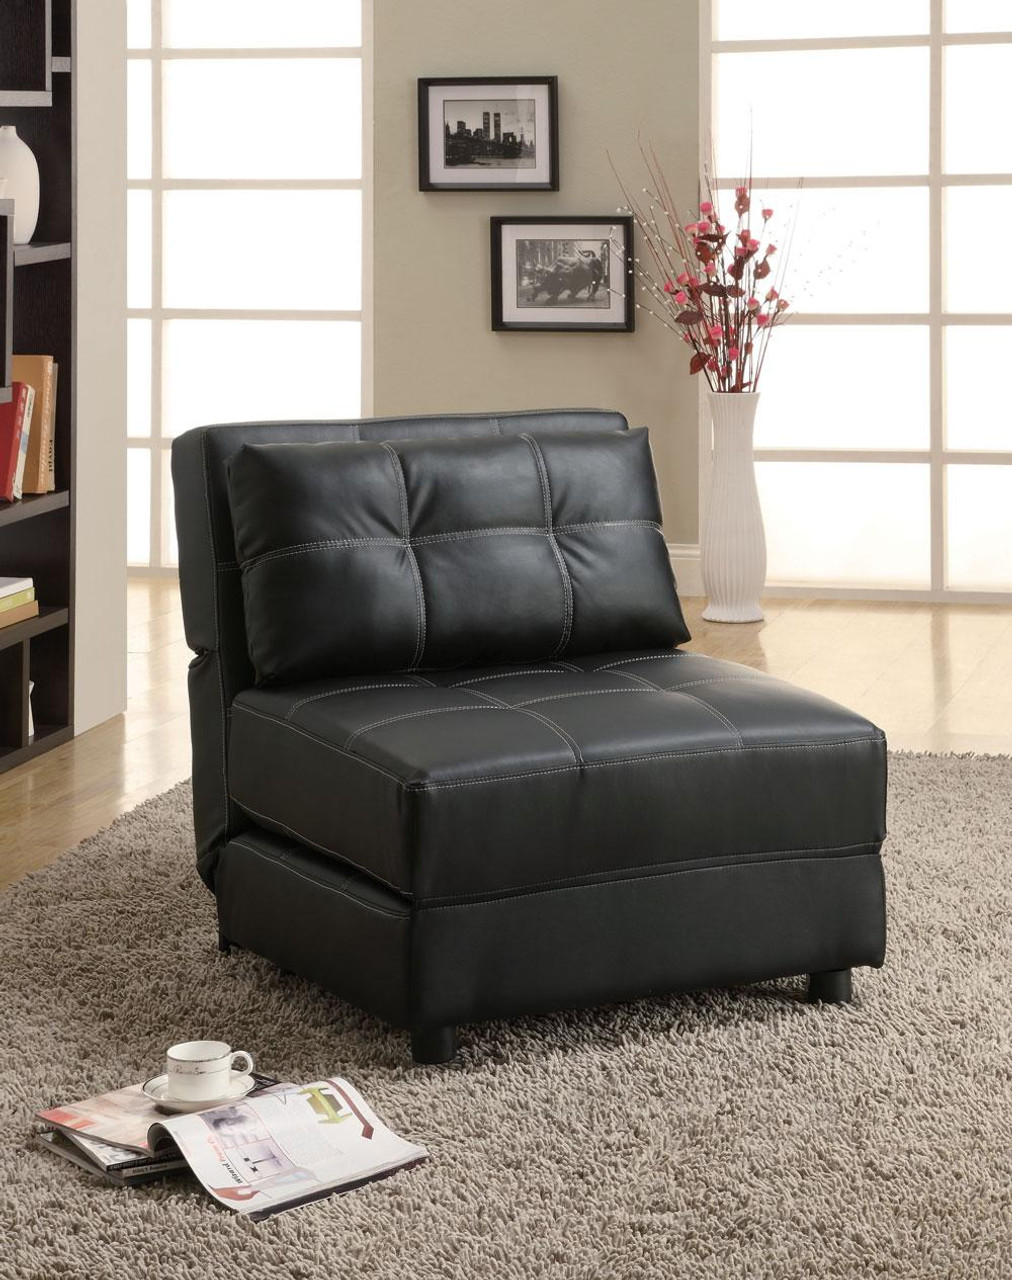 Admirable Franklin Black Leather Accent Chair Bed Lounger Machost Co Dining Chair Design Ideas Machostcouk